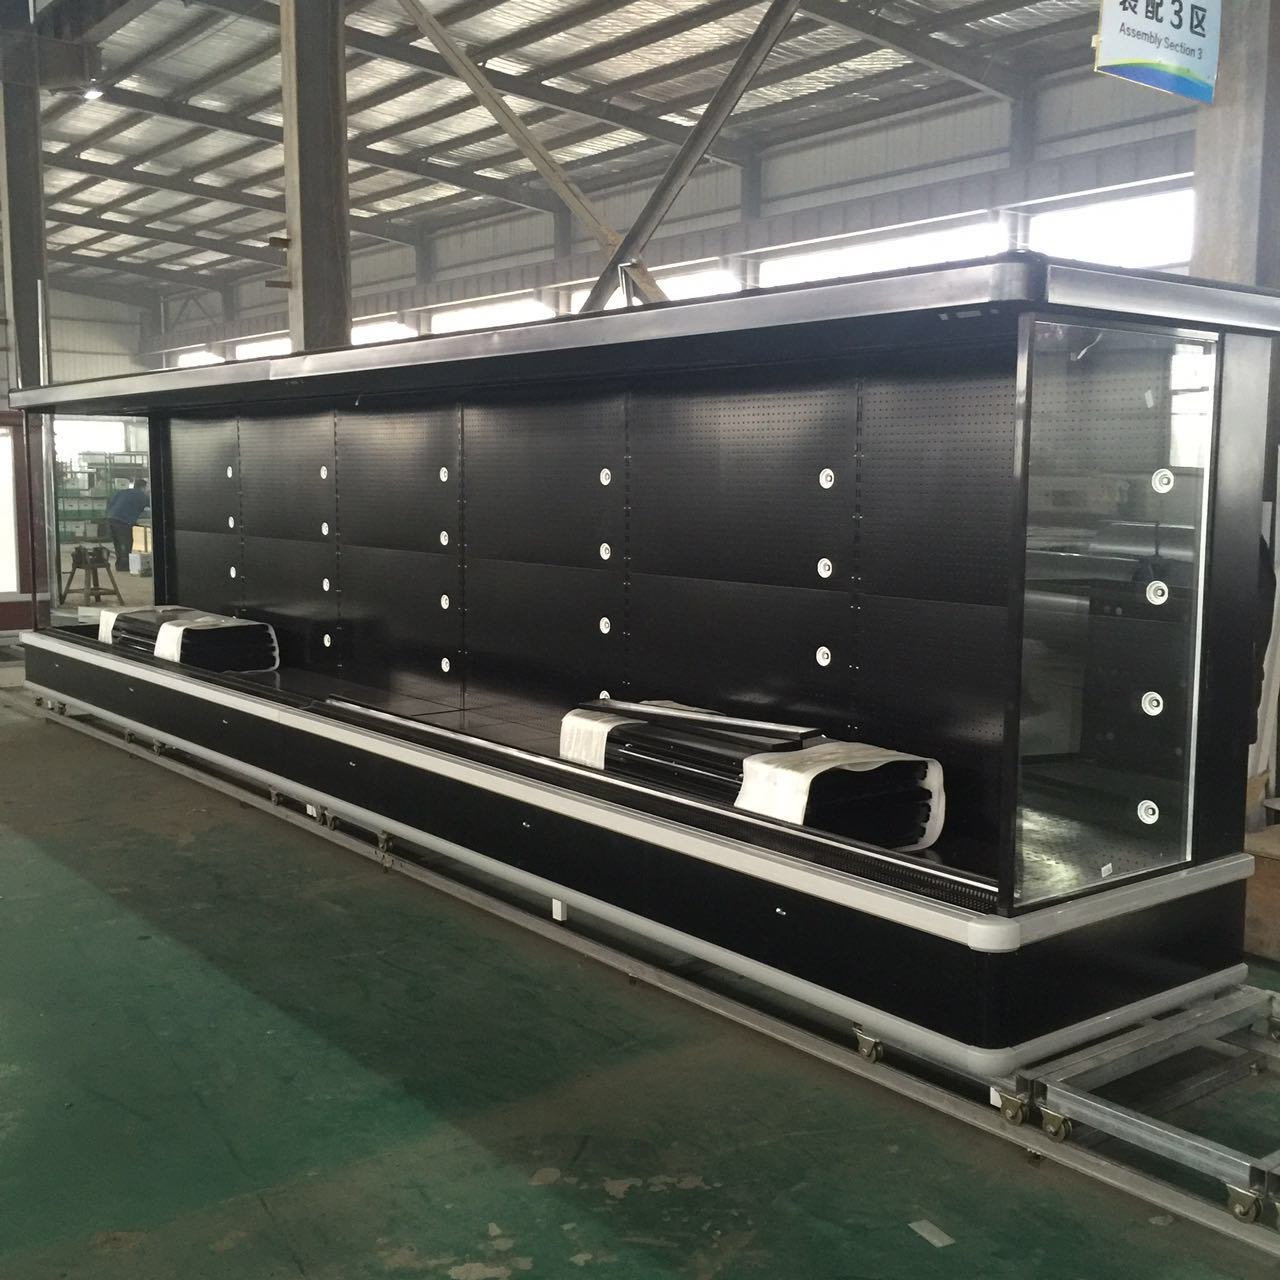 Ce/FCC Certification Commercial Dairy Produce Display Chiller/Refrigerator